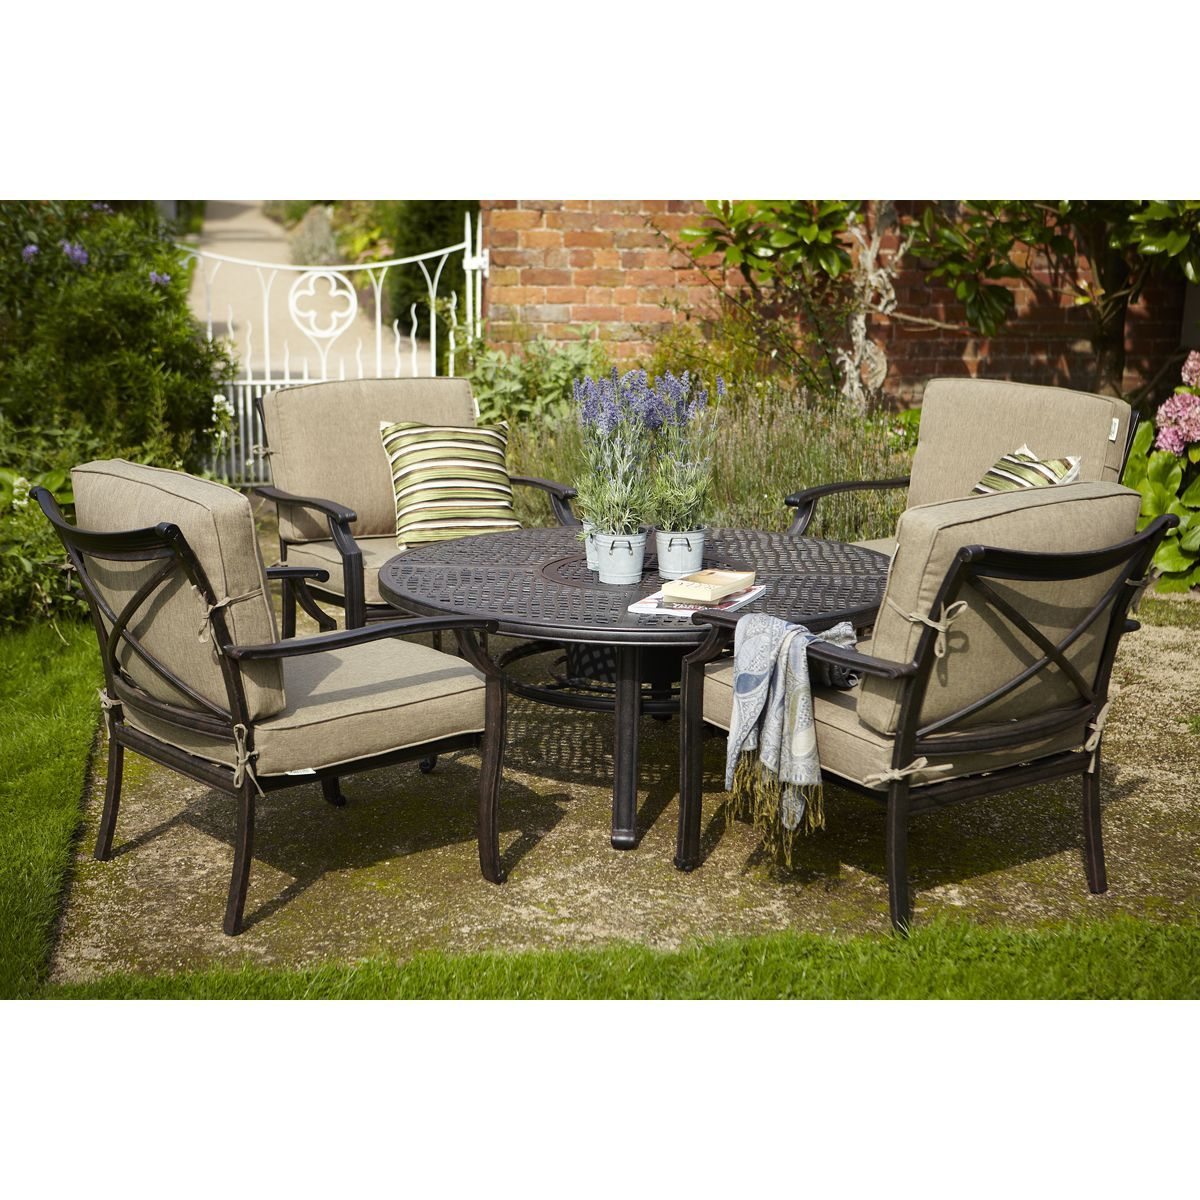 jamie oliver fire pit set jofireset available to buy online from garden furniture world we sell a large range of garden furniture from the best